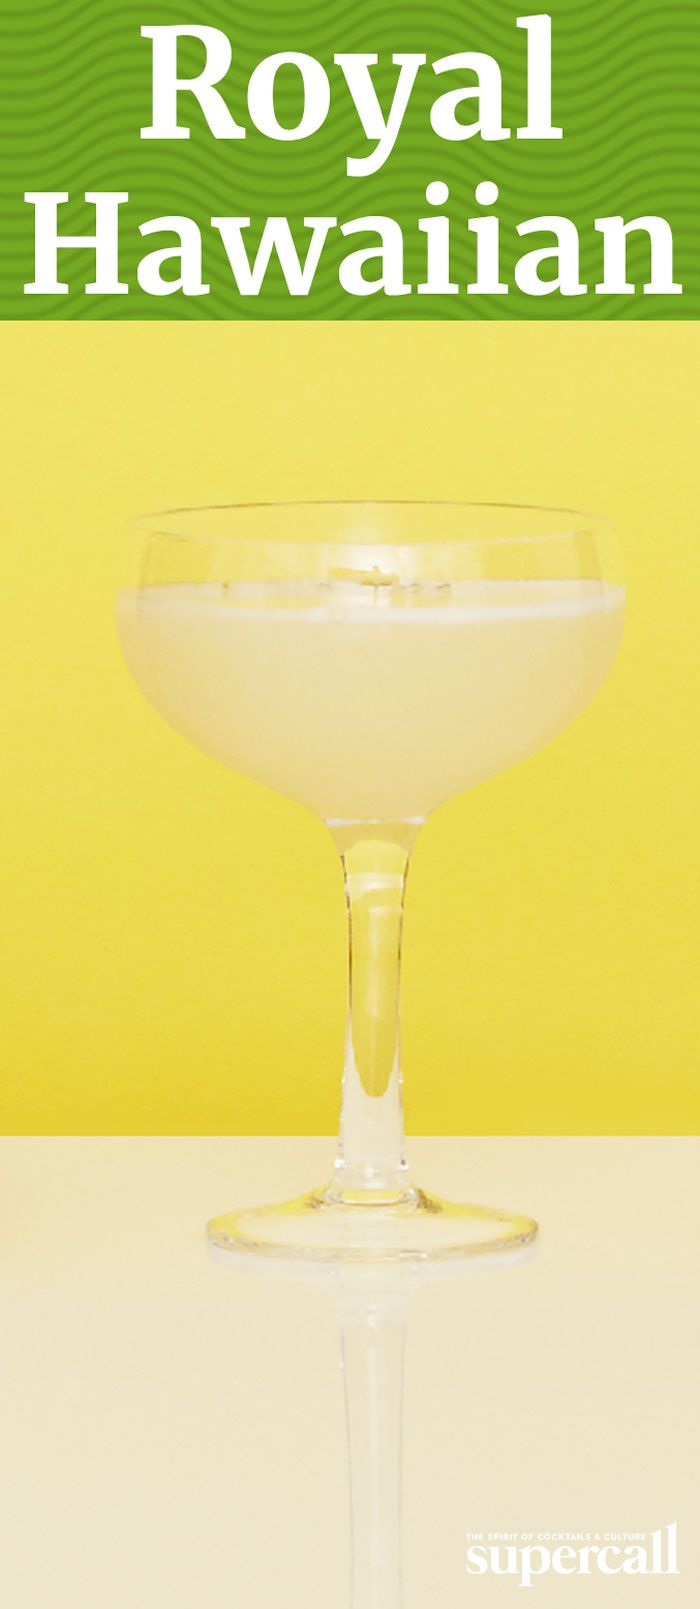 The cocktail combines gin with fresh pineapple juice, lemon juice and orgeat into a frothy, fruity (but not too sweet) island drink.